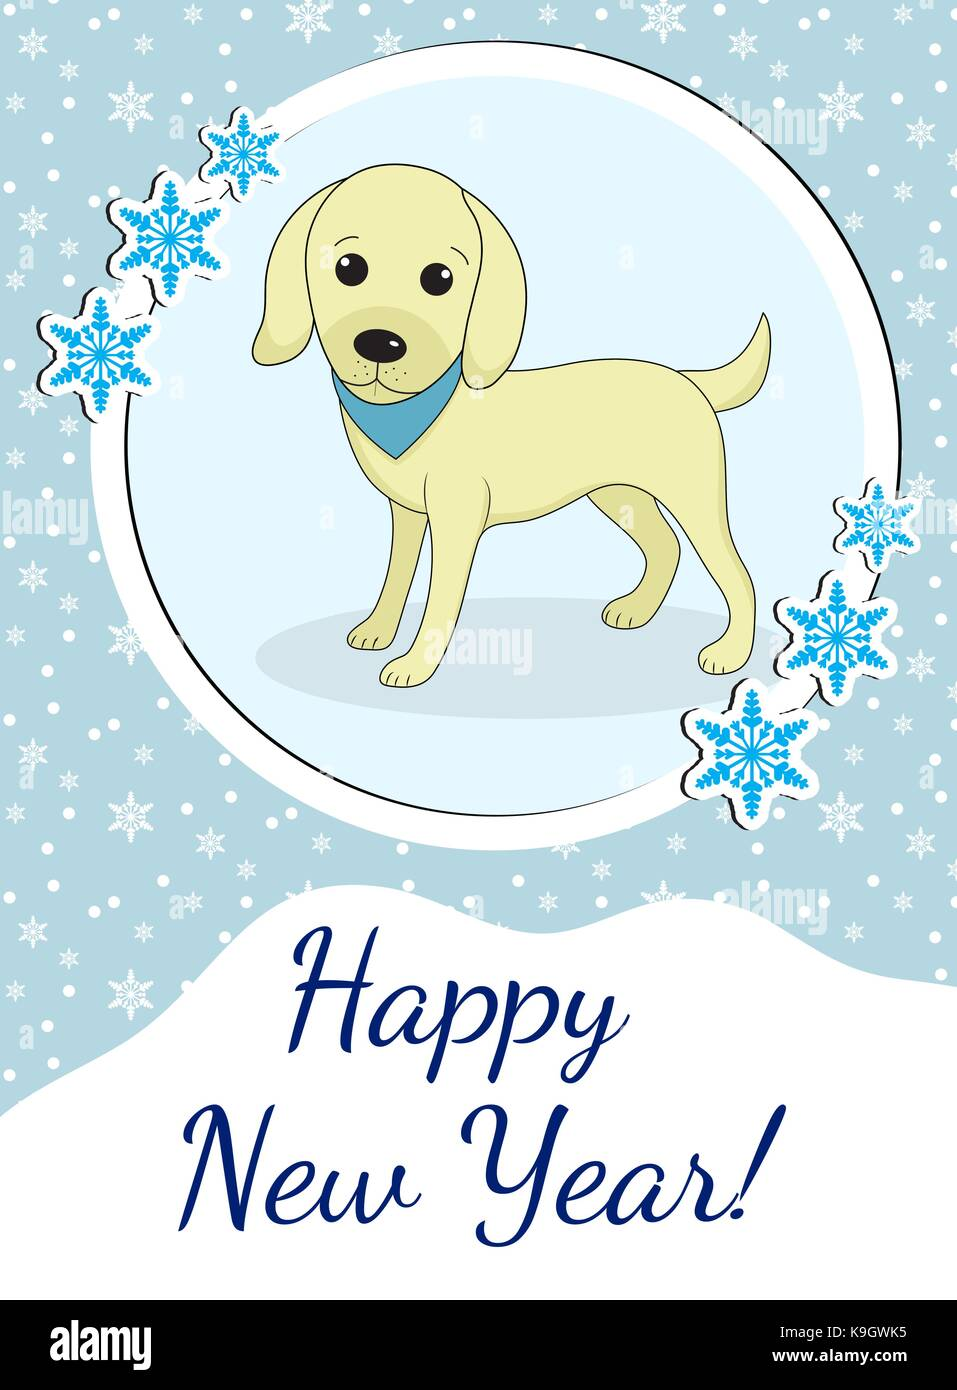 Happy New Year Greeting Card With Cute Dog Puppy Chinese New Year